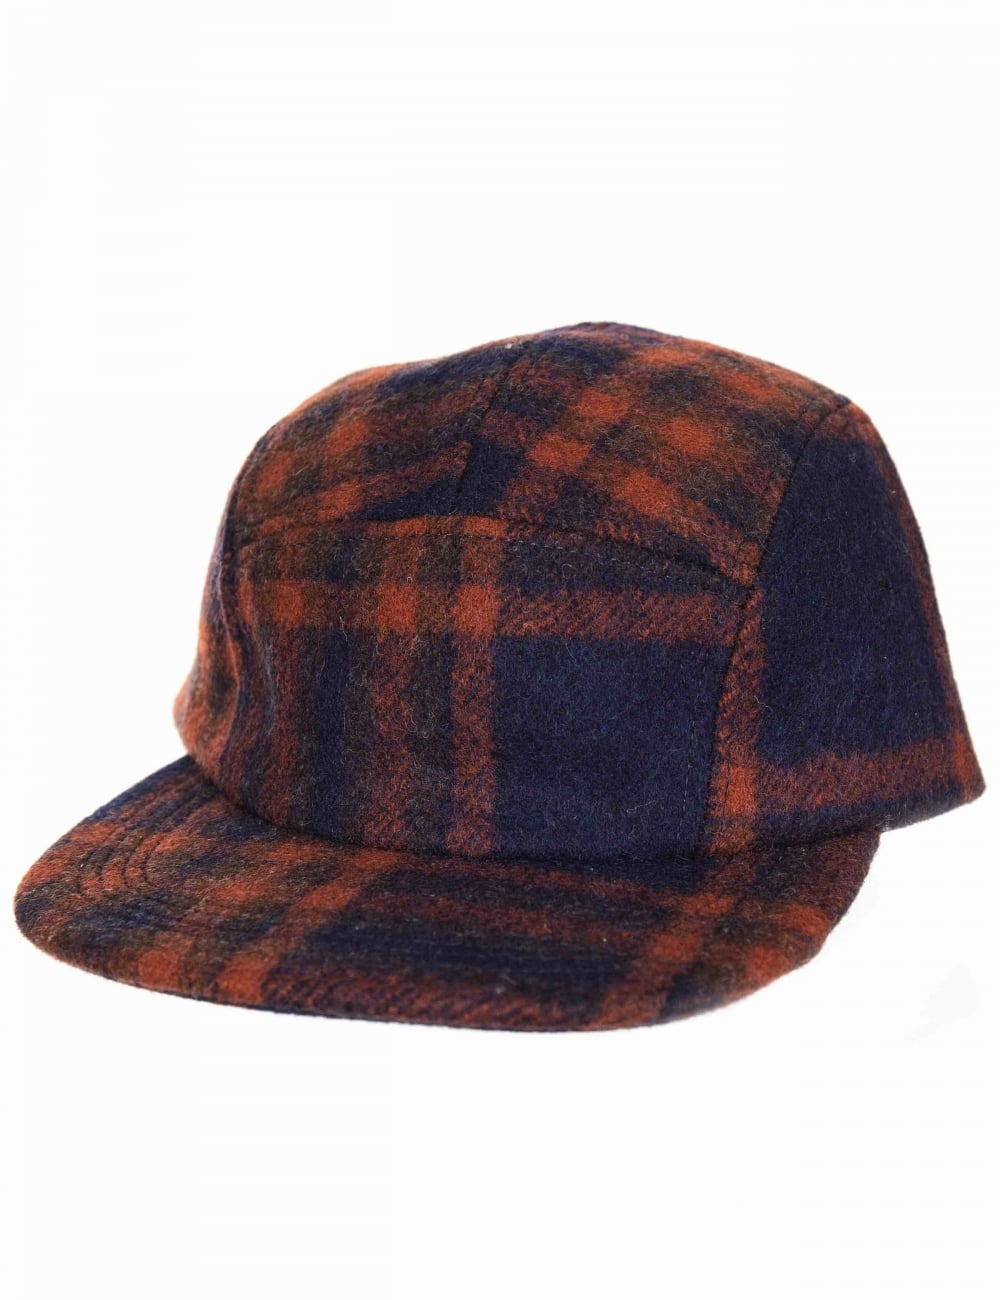 Filson Wool 5 Panel Cap - Navy Copper Brown - Hat Shop from Fat ... c34a0c4ff09